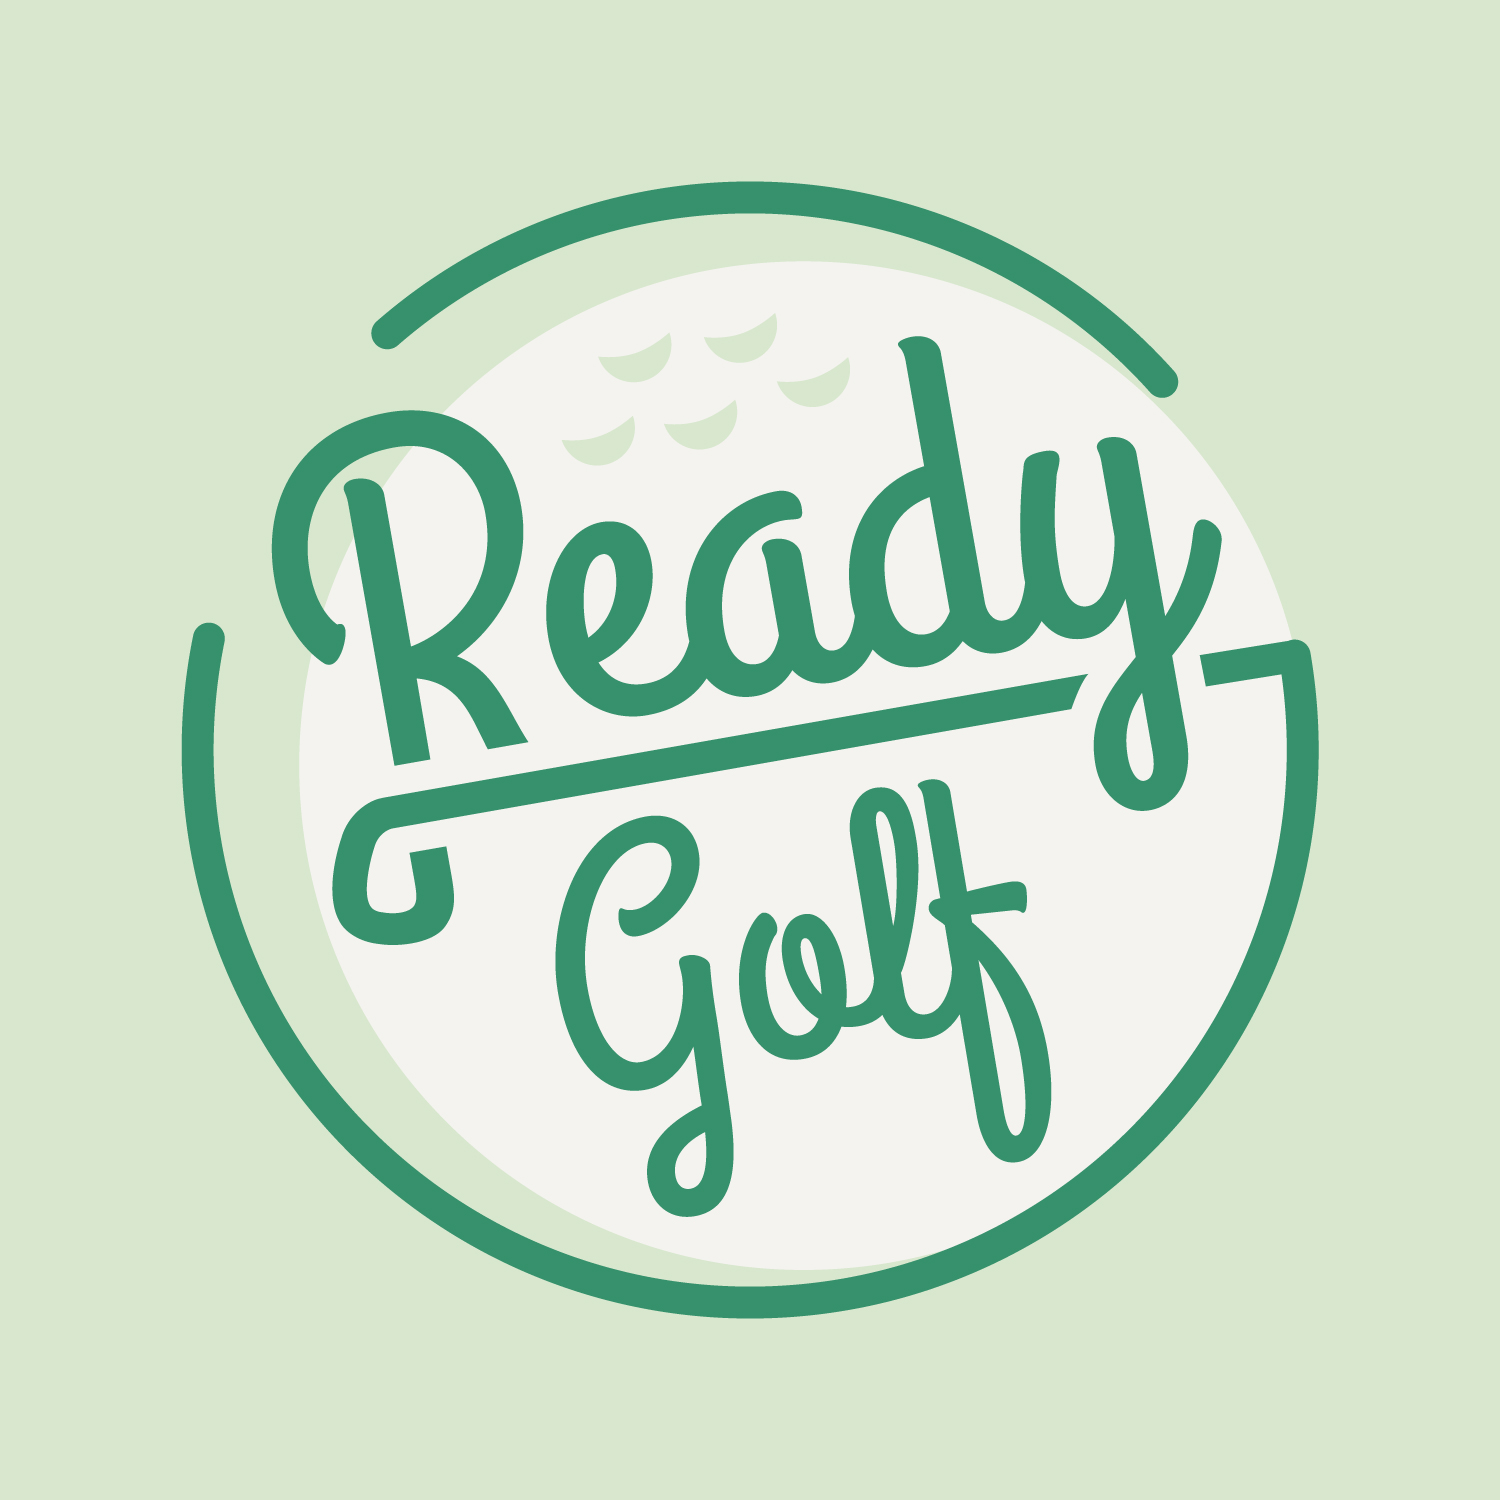 Introducing Ready Golf Course Ratings (RG13)